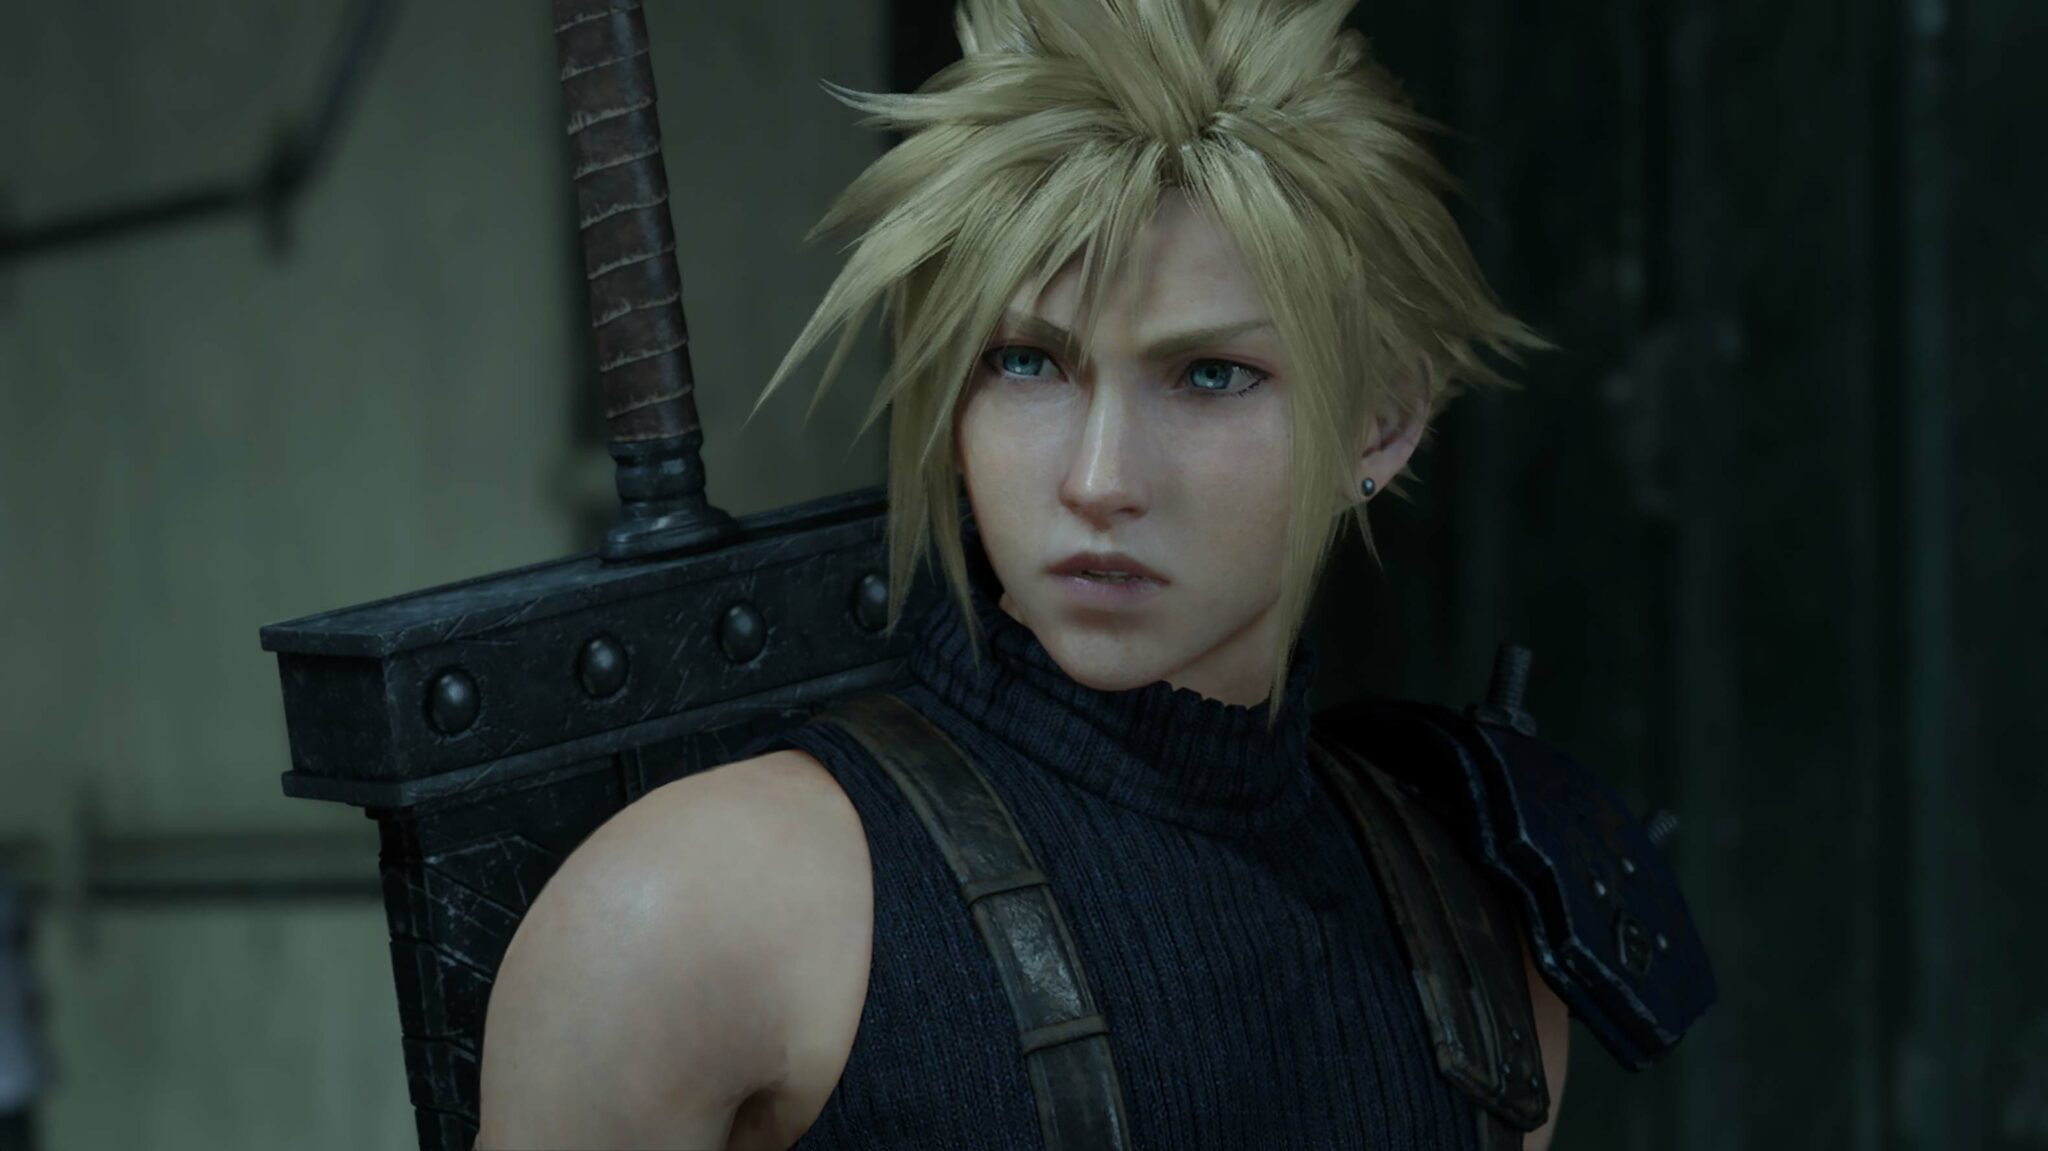 Hidden Epic Store listing suggests Final Fantasy VII Remake may come to PC